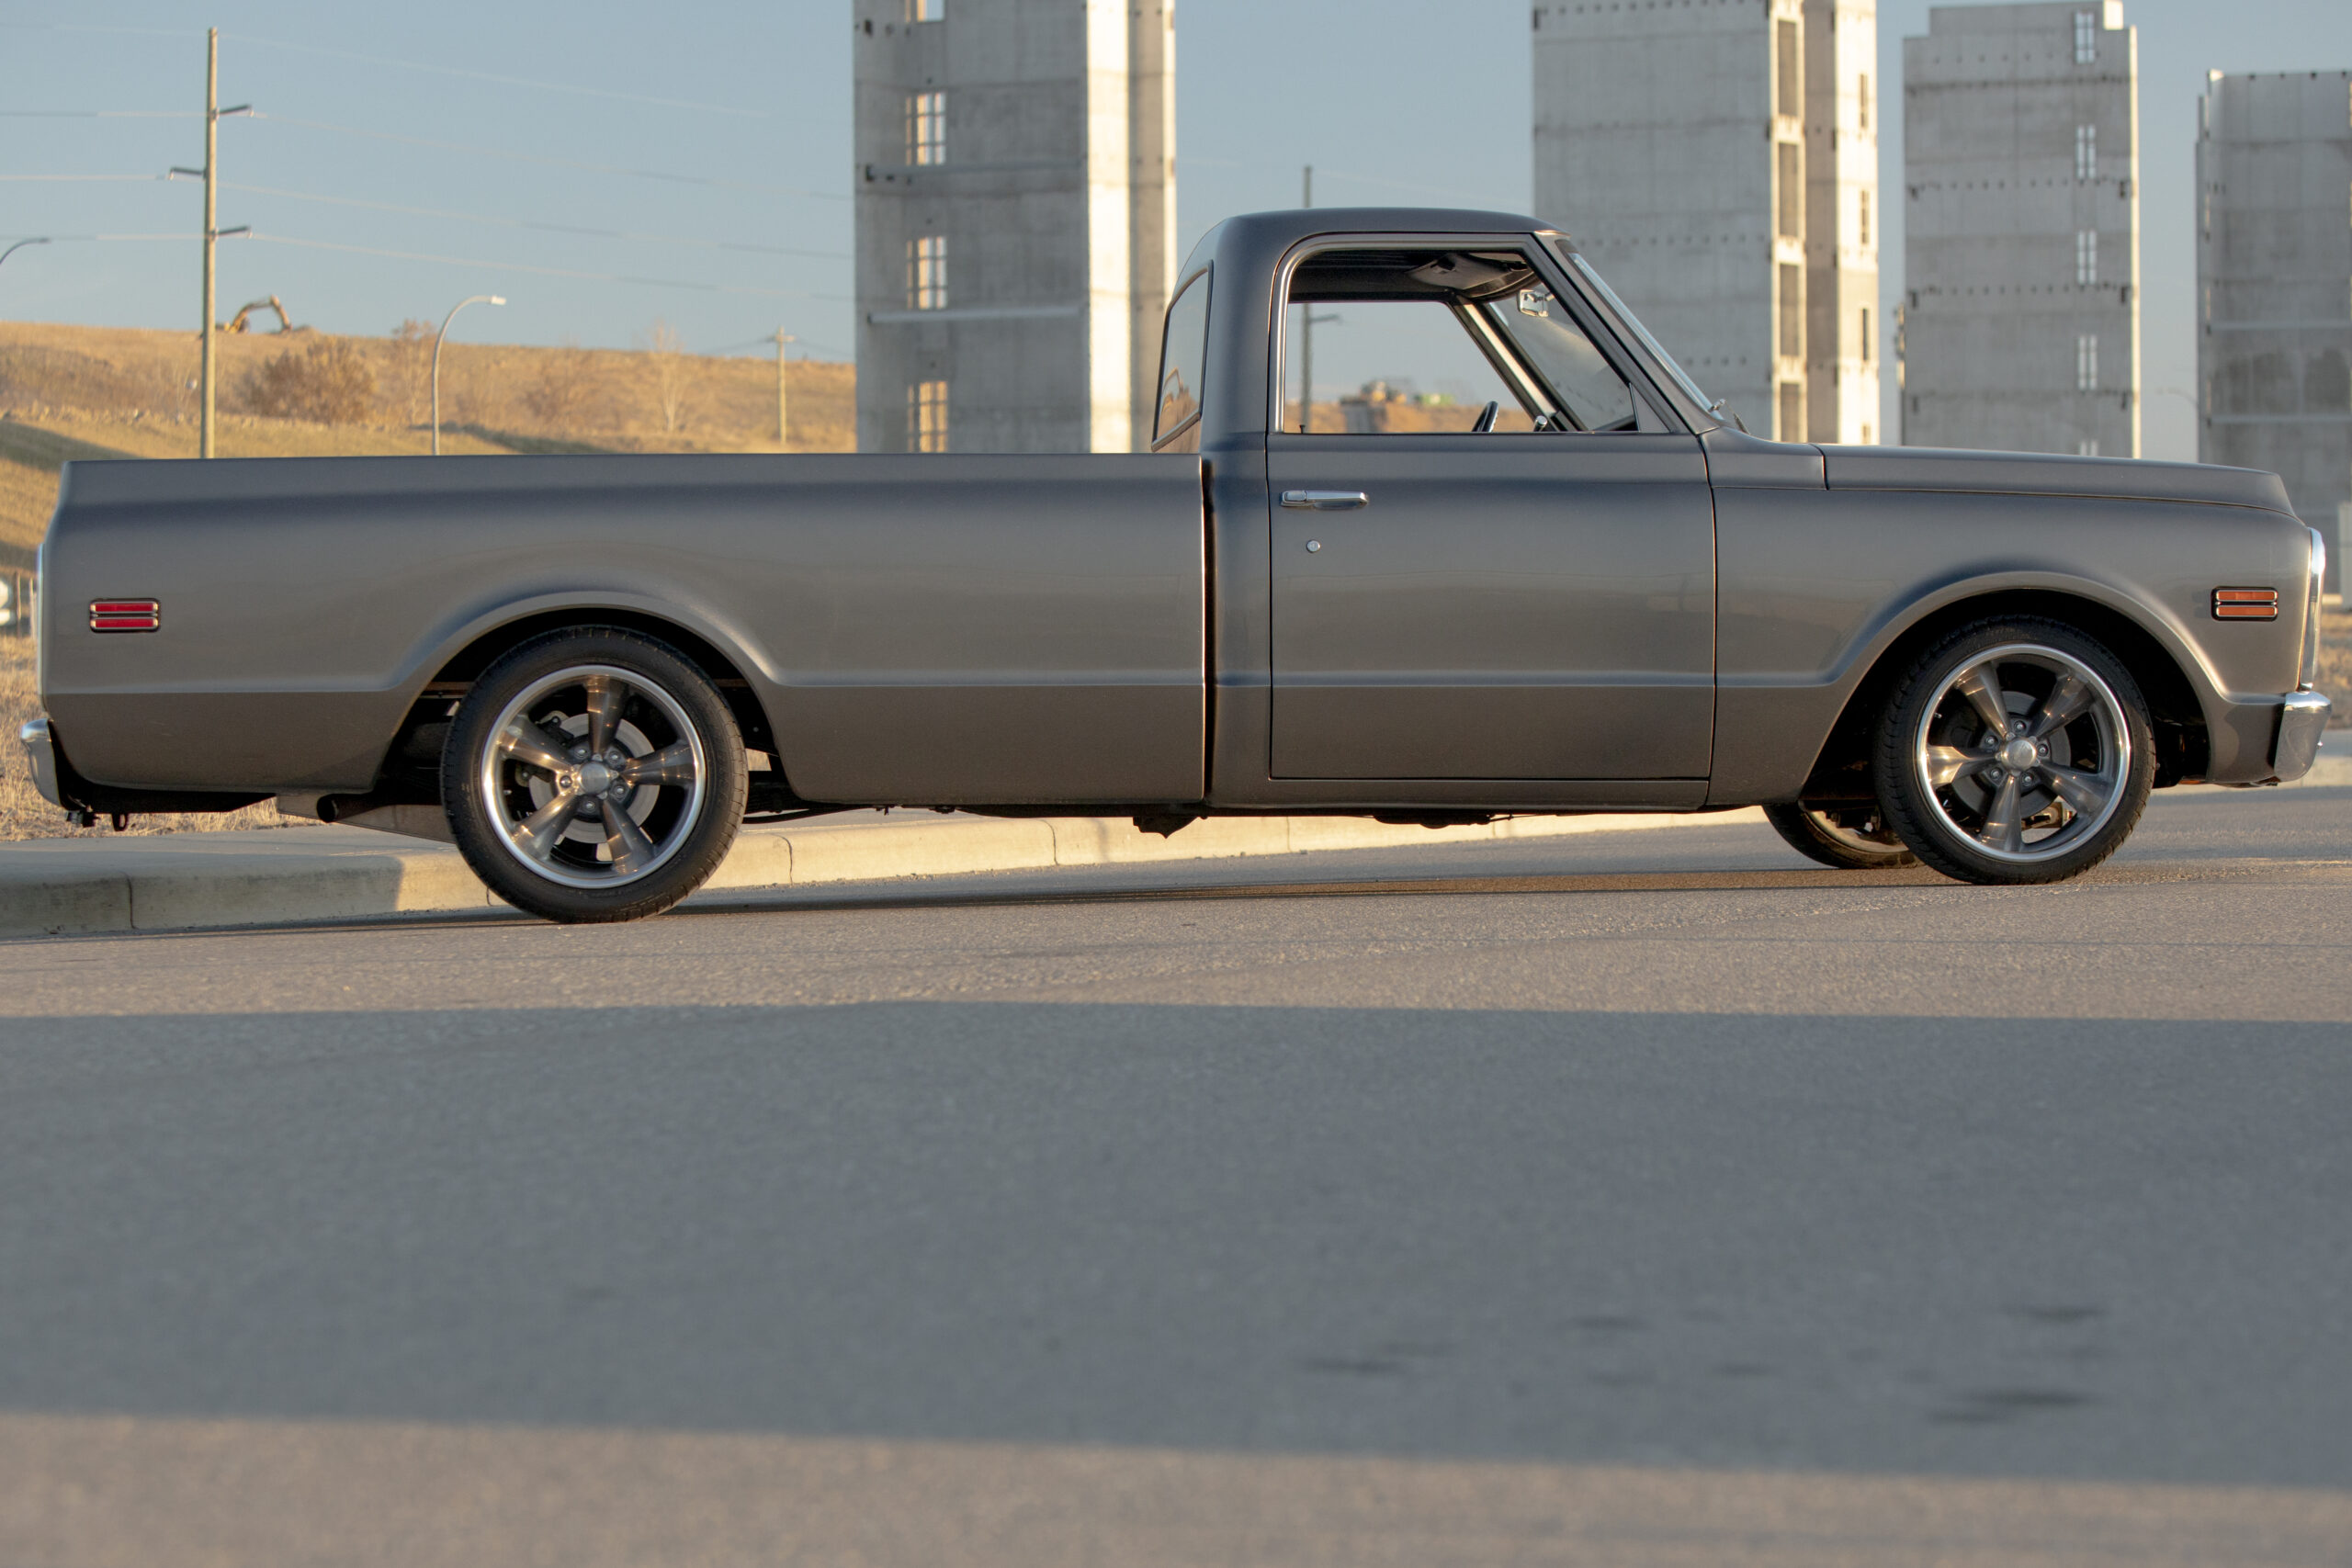 Gordon Williams' 1972 Chevrolet pickup truck photographed on Friday, Oct. 18, 2019 in Calgary, Alta. Britton Ledingham/iEvolve Photo